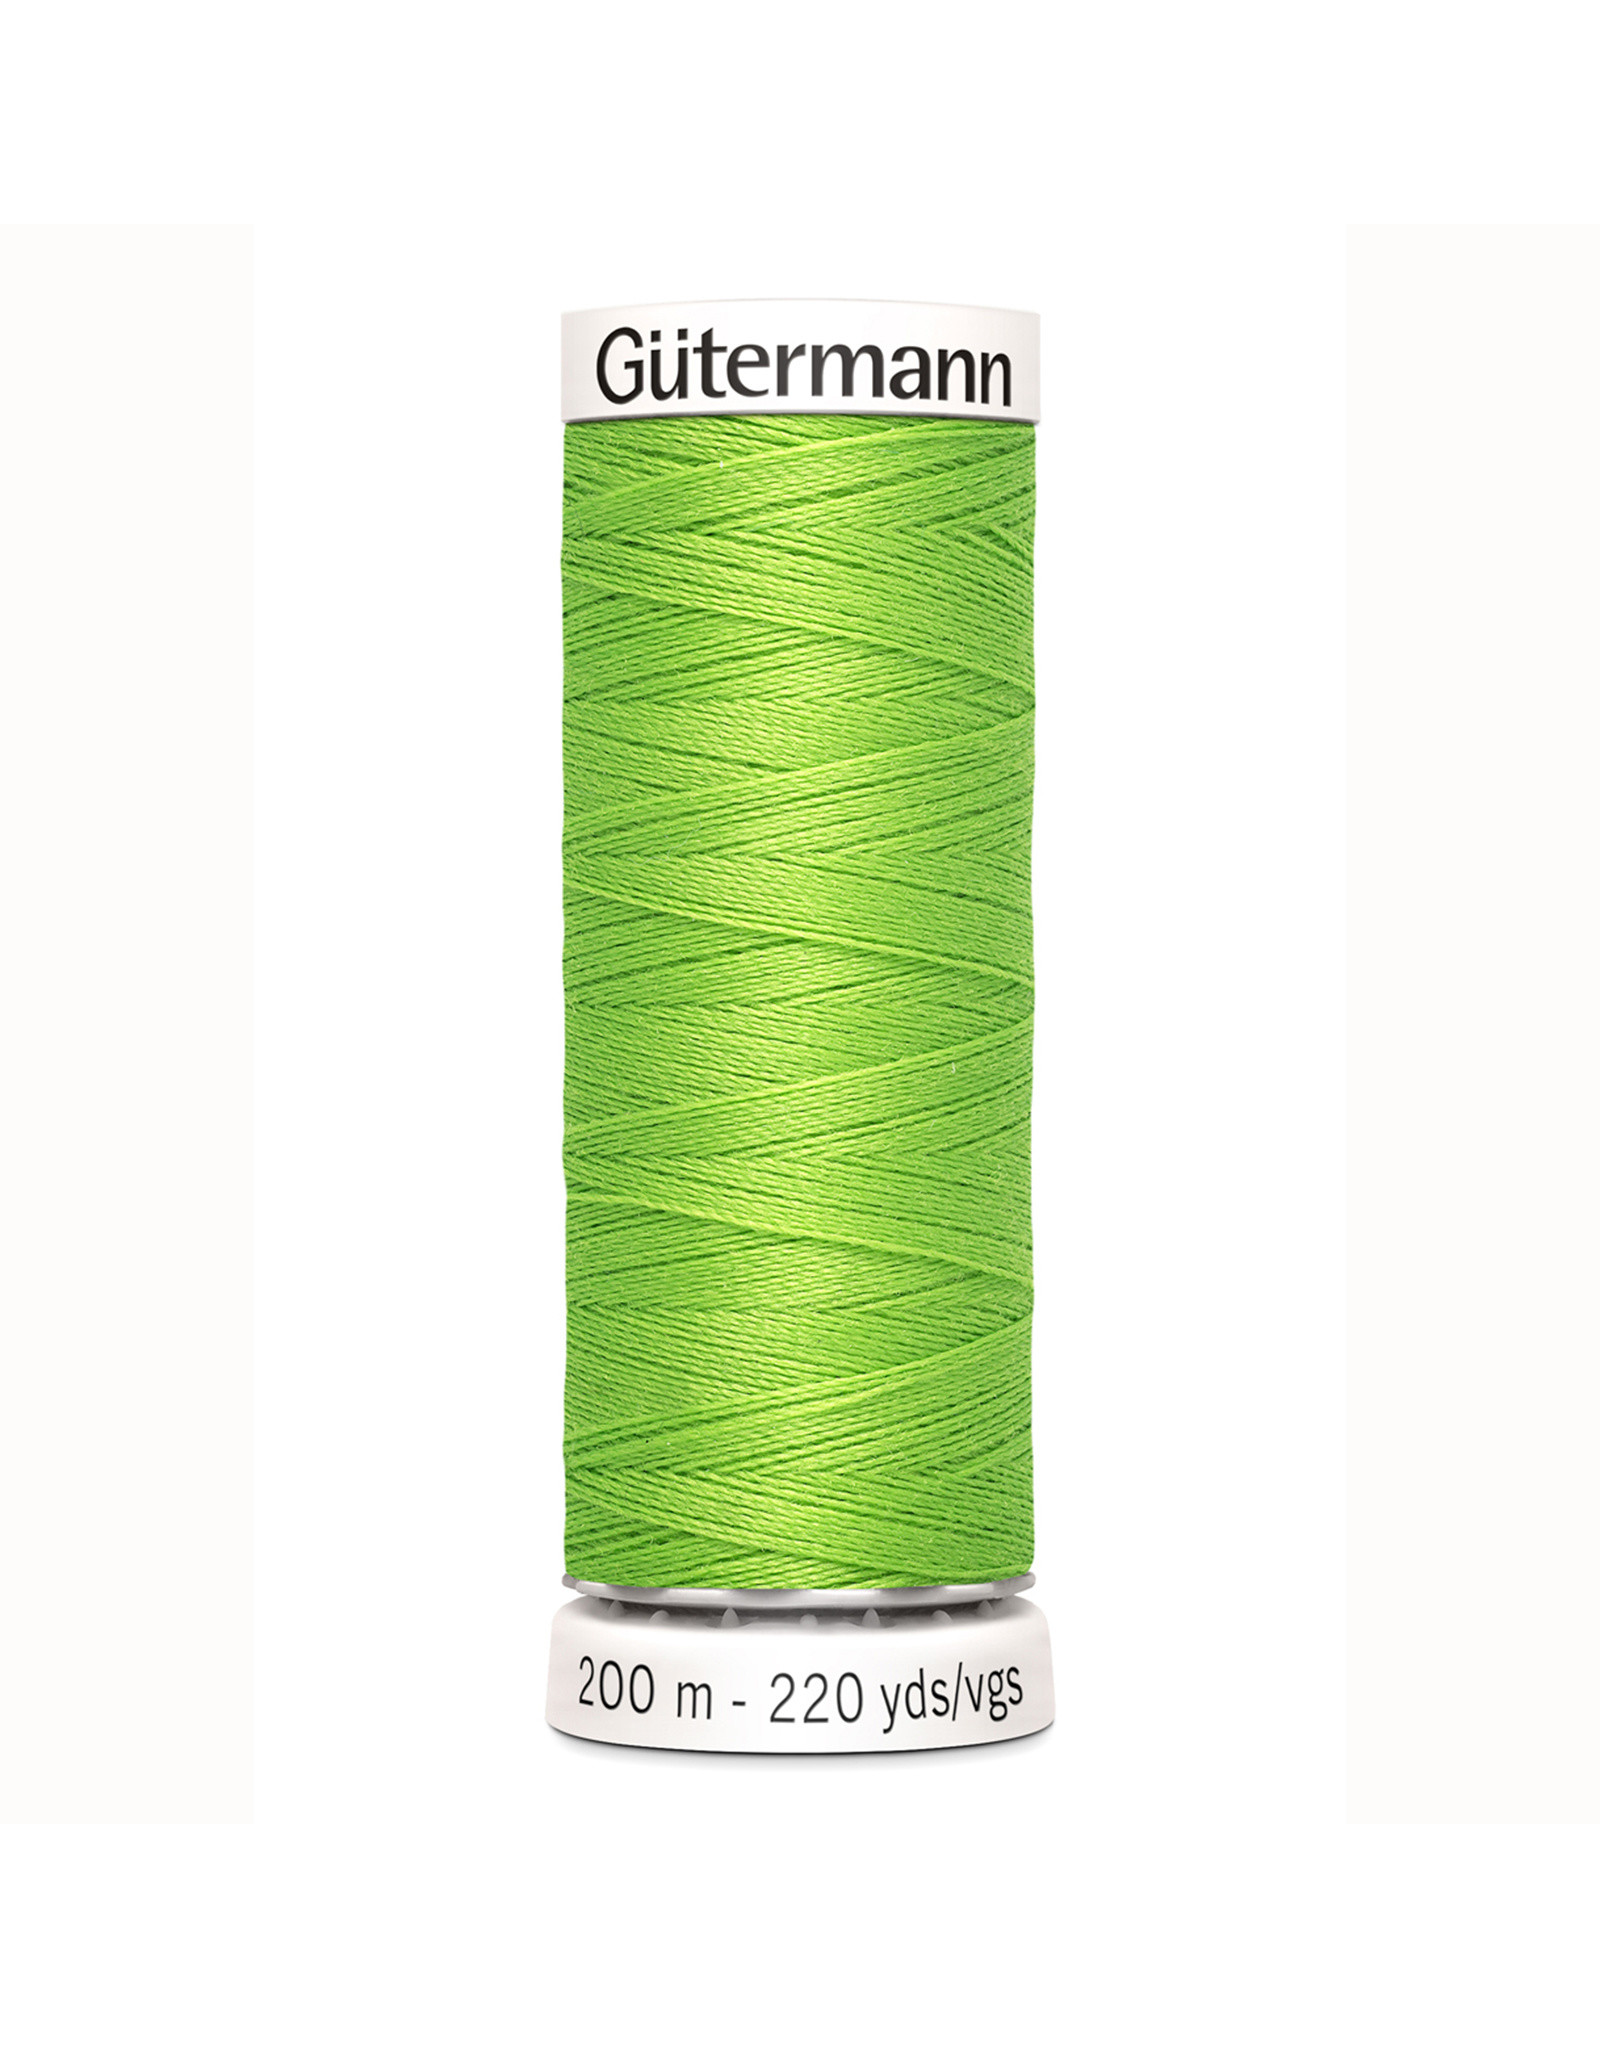 Gütermann Gütermann Sewing Thread 200 m - nr 336